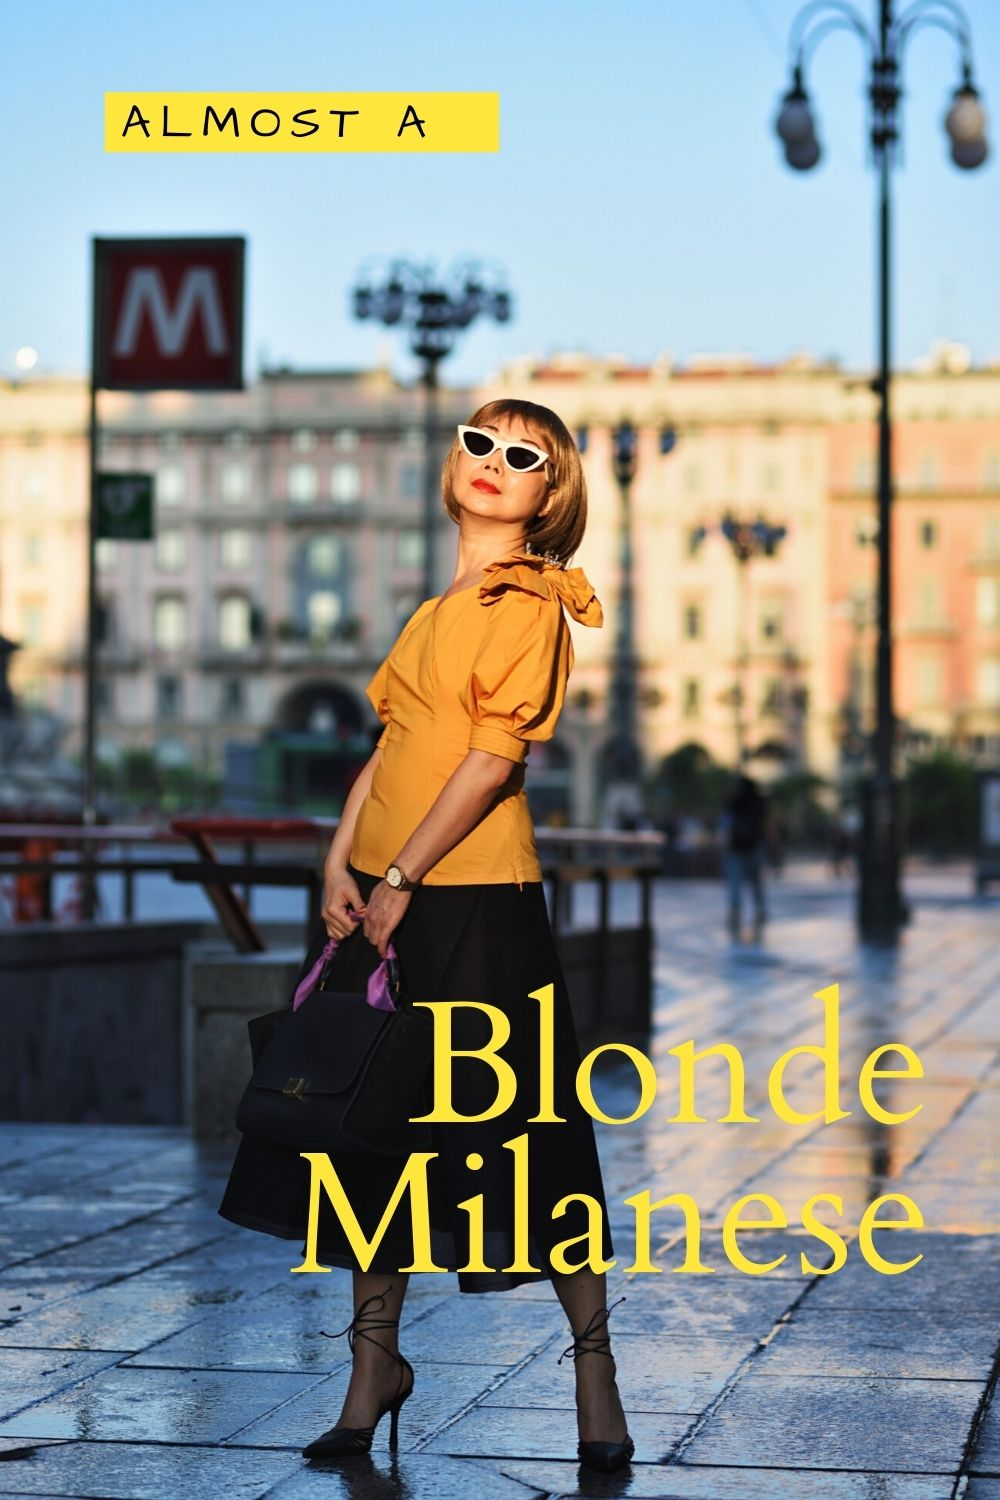 'Almost A Blonde Milanese' fashion story by White Caviar Life. Fashion shoot on location at Milan Cathedral (Duomo di Milano) by Australian photographer Kent Johnson.